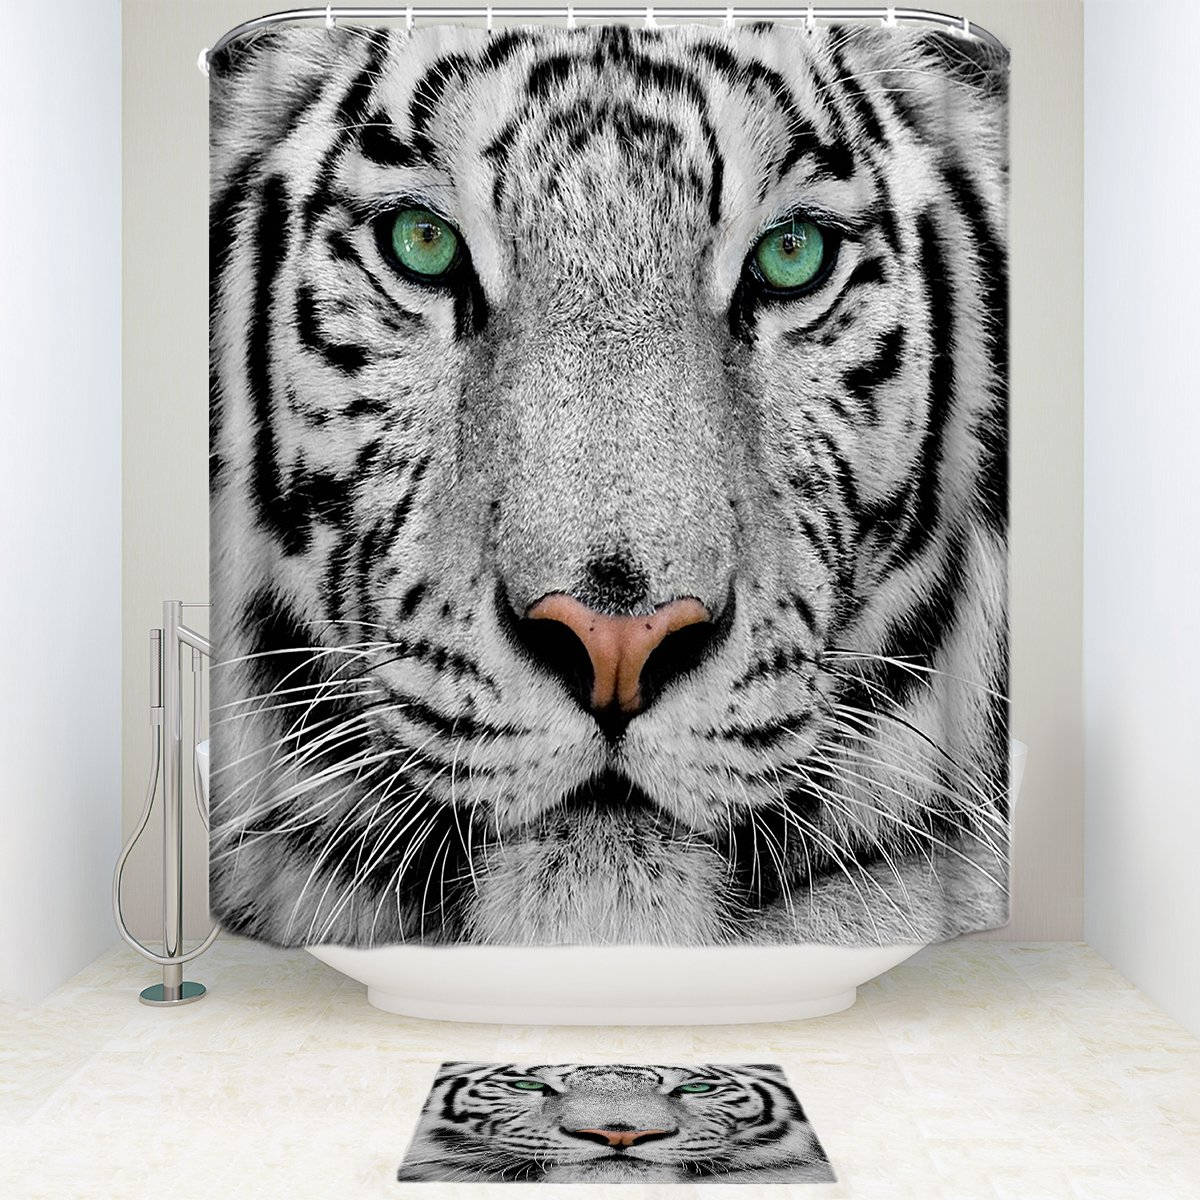 well-wreapped OneHoney White Tiger Face Animal Polyester Fabric Bathroom Shower Curtain Set with Bath Mats Rugs 72 x 72 inch & 23.6x15.7inch